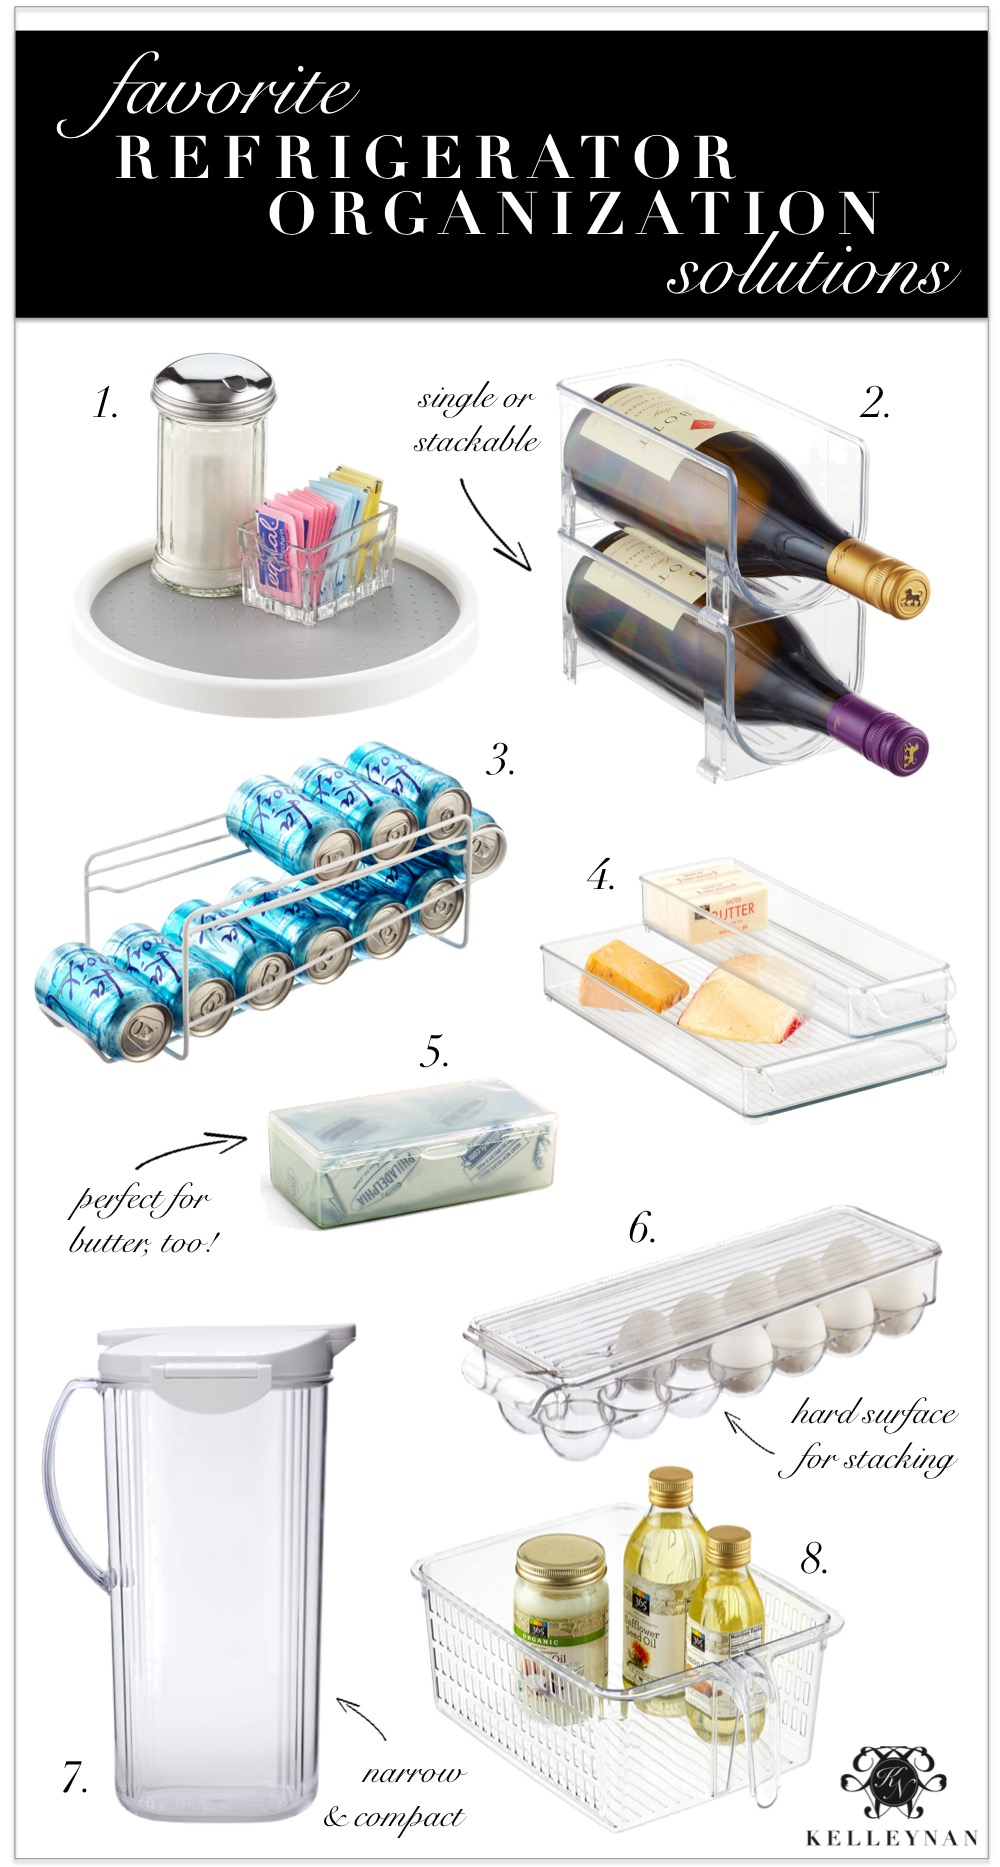 Facorite Fridge Organization Solutions and Ideas